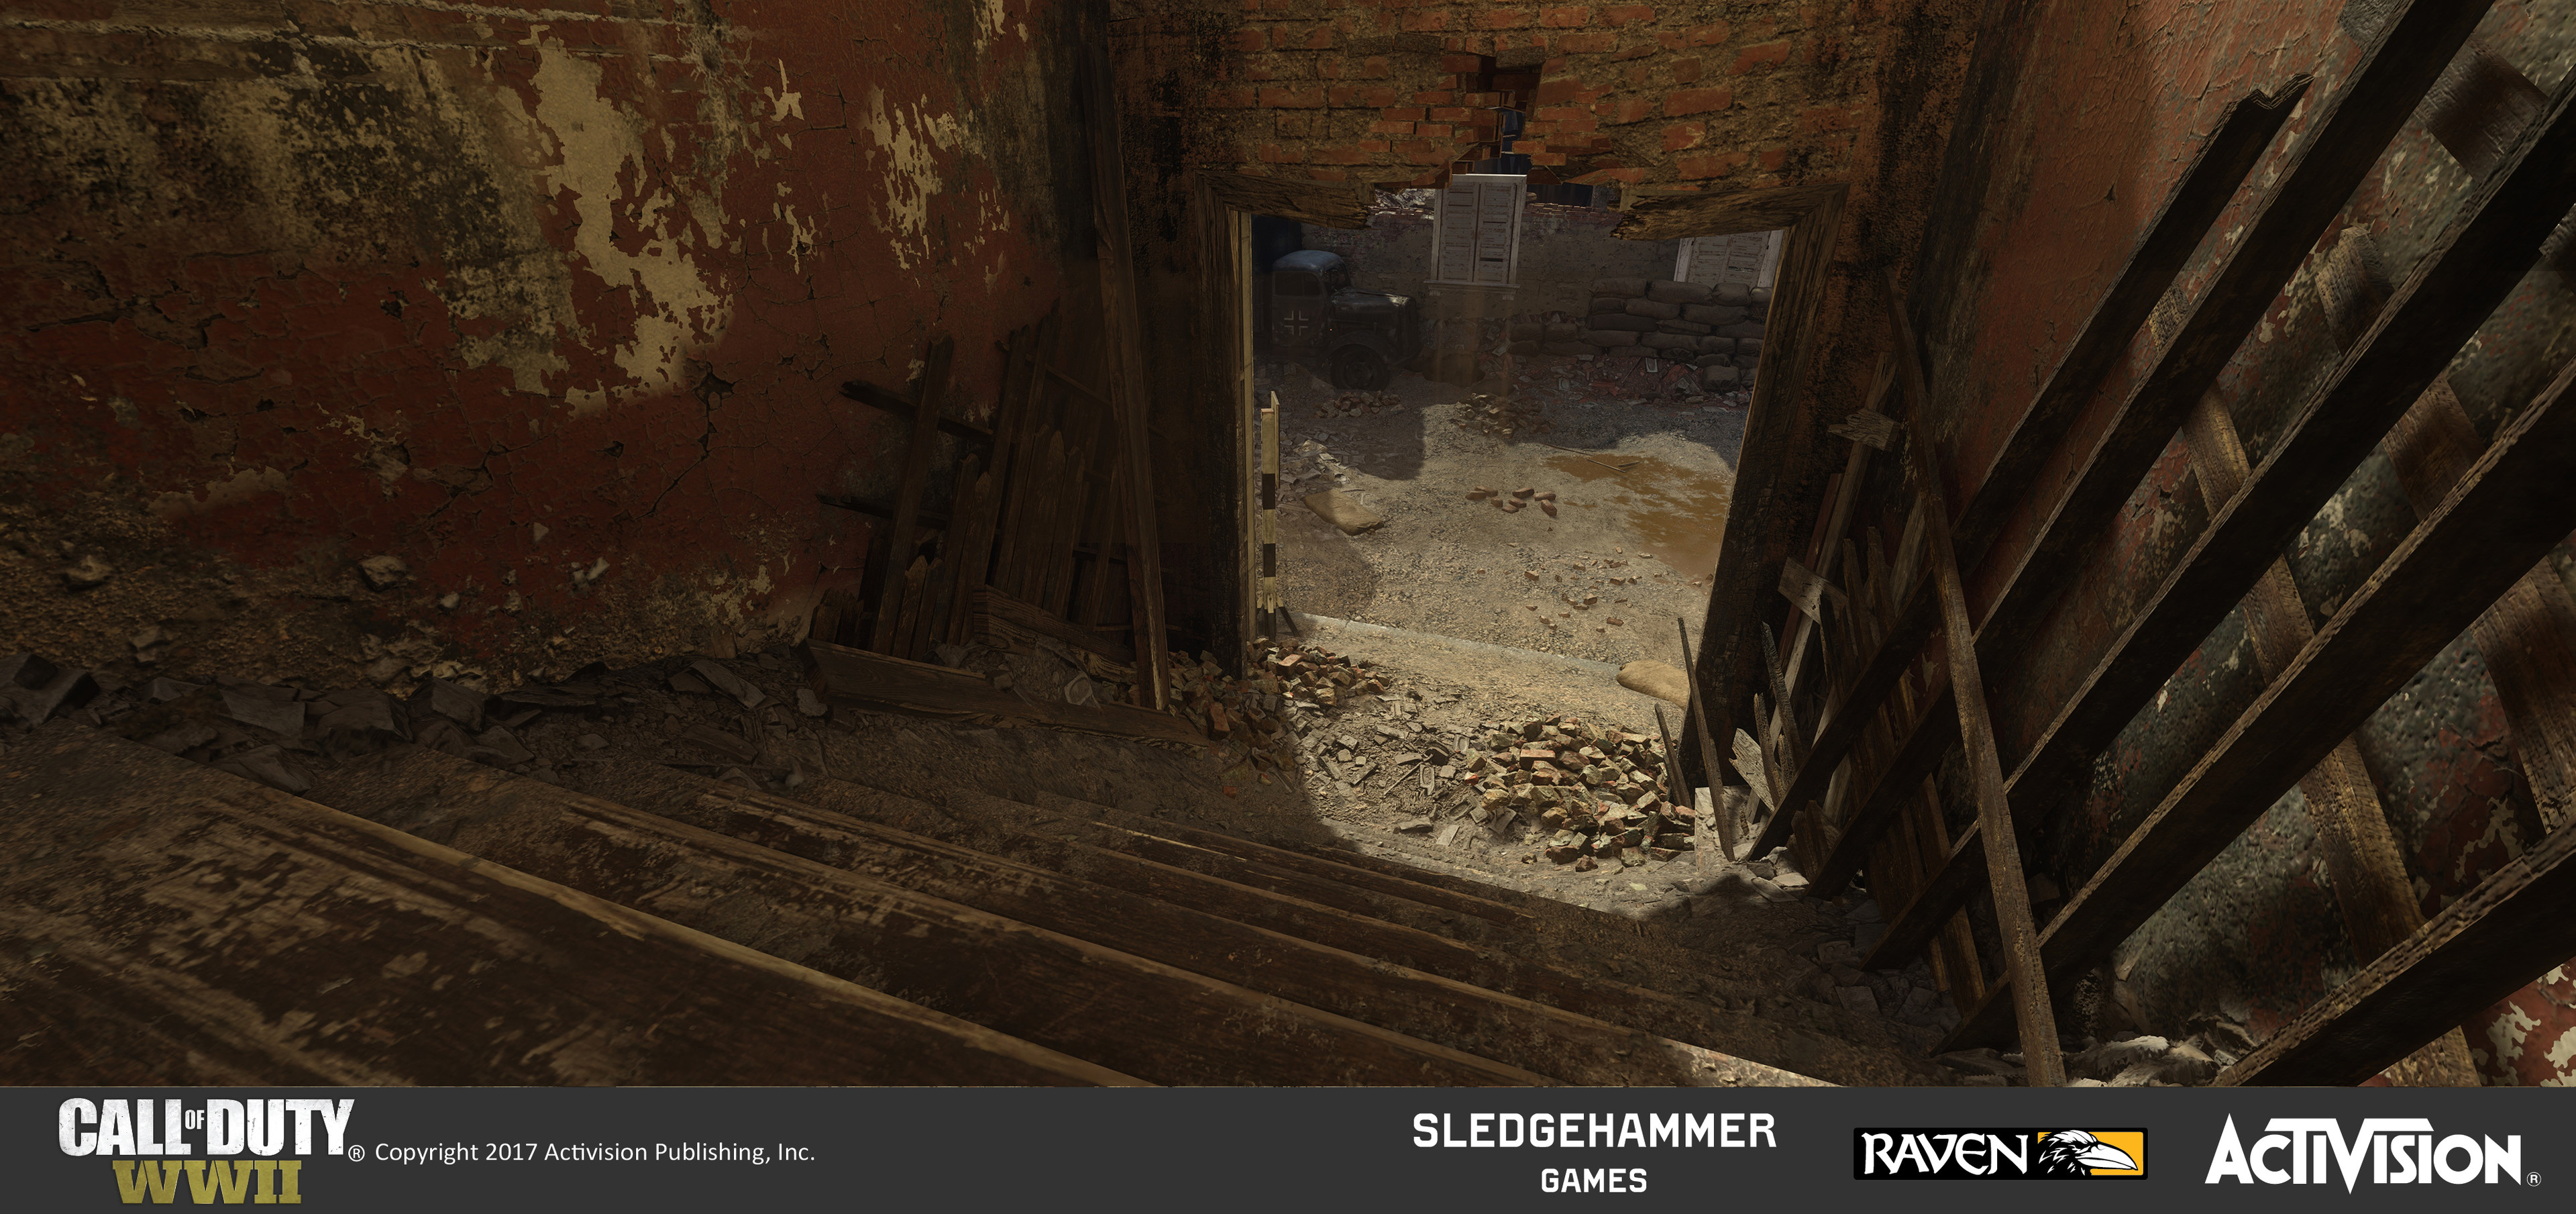 I created the geo for the stairwell, debris pile, and destroyed walls on both sides. I applied pre-existing materials as a unique treatment to this area. Our effects department added a falling dust effect under the bricks over the door frame.